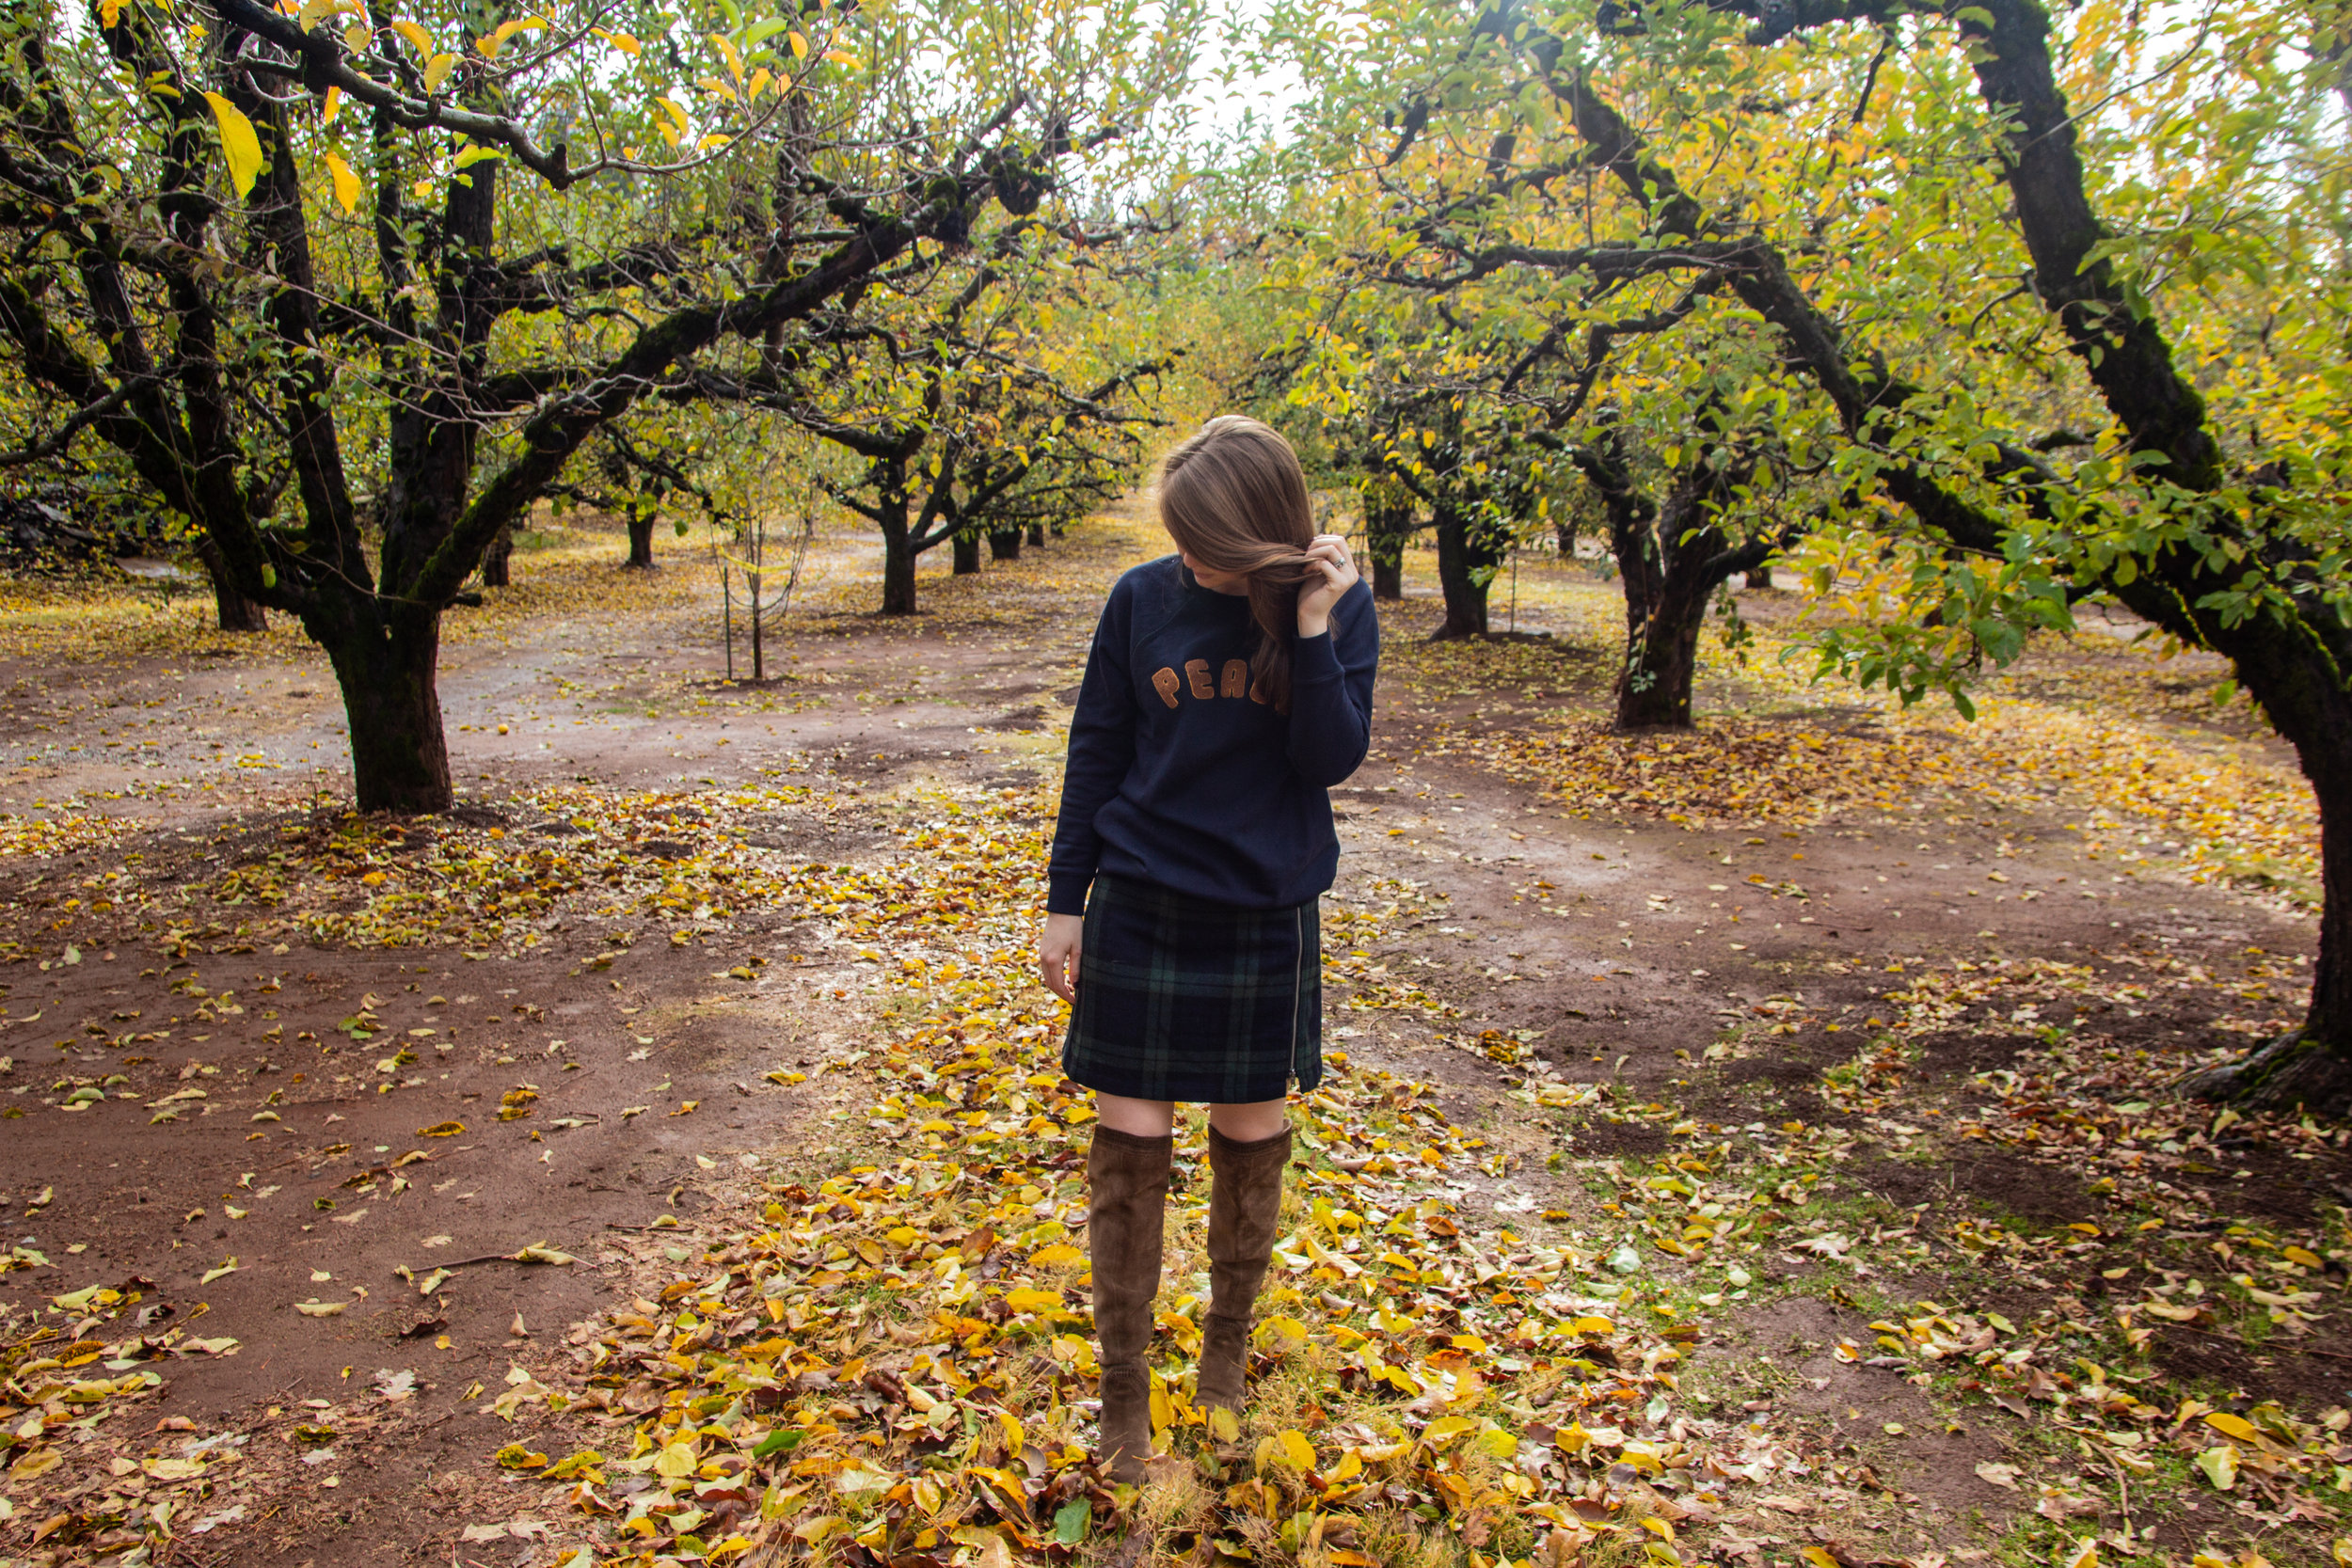 blackwatch plaid mini skirt, suede vince camuto over the knee boots, peace sweatshirt, american eagle sweatshirt, apple hill, california, placerville